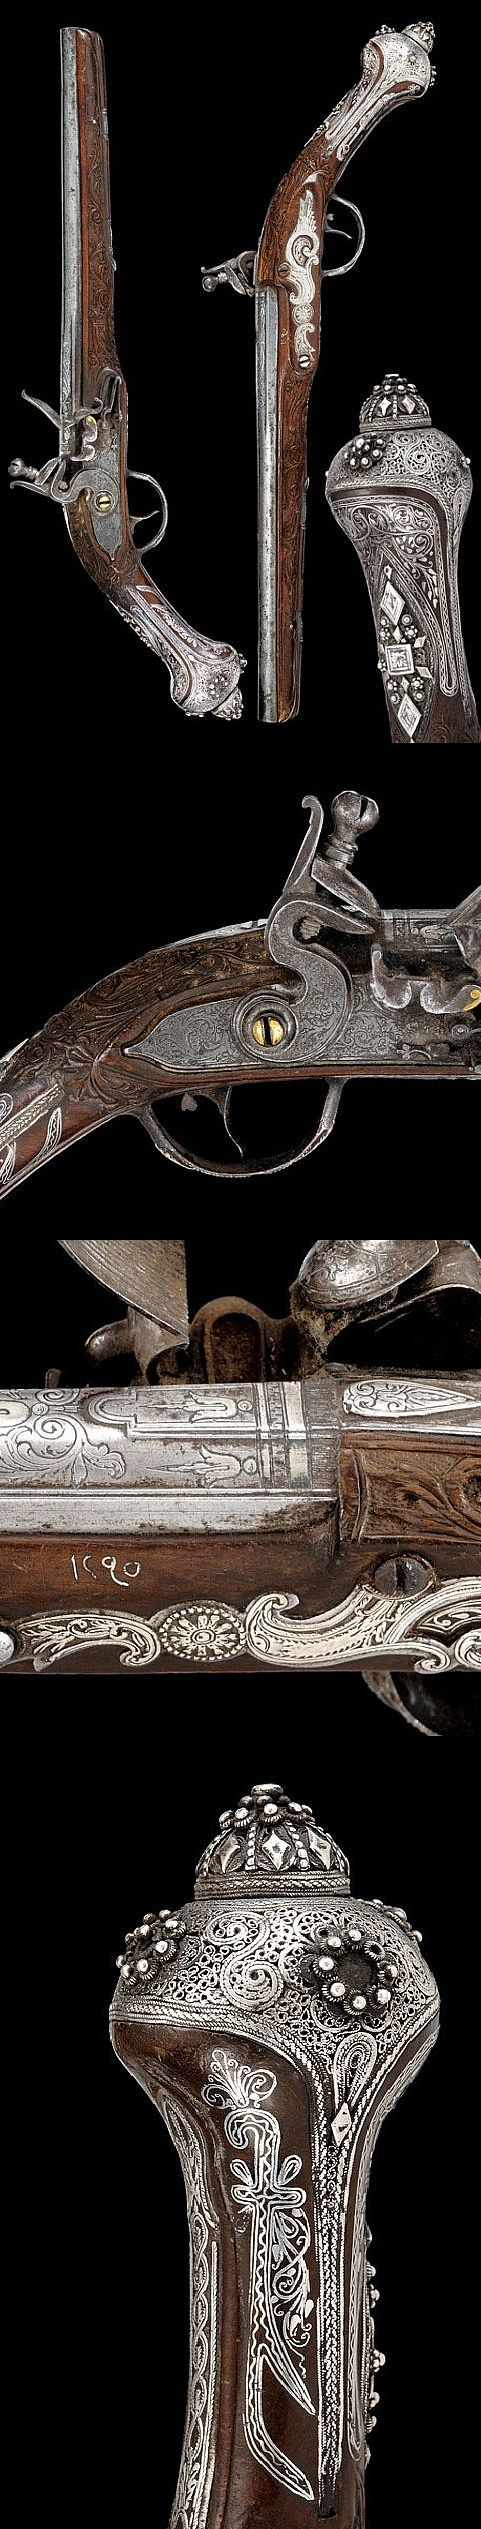 A pair of flintlock pistols   dating: circa 1800   provenance: Turkey